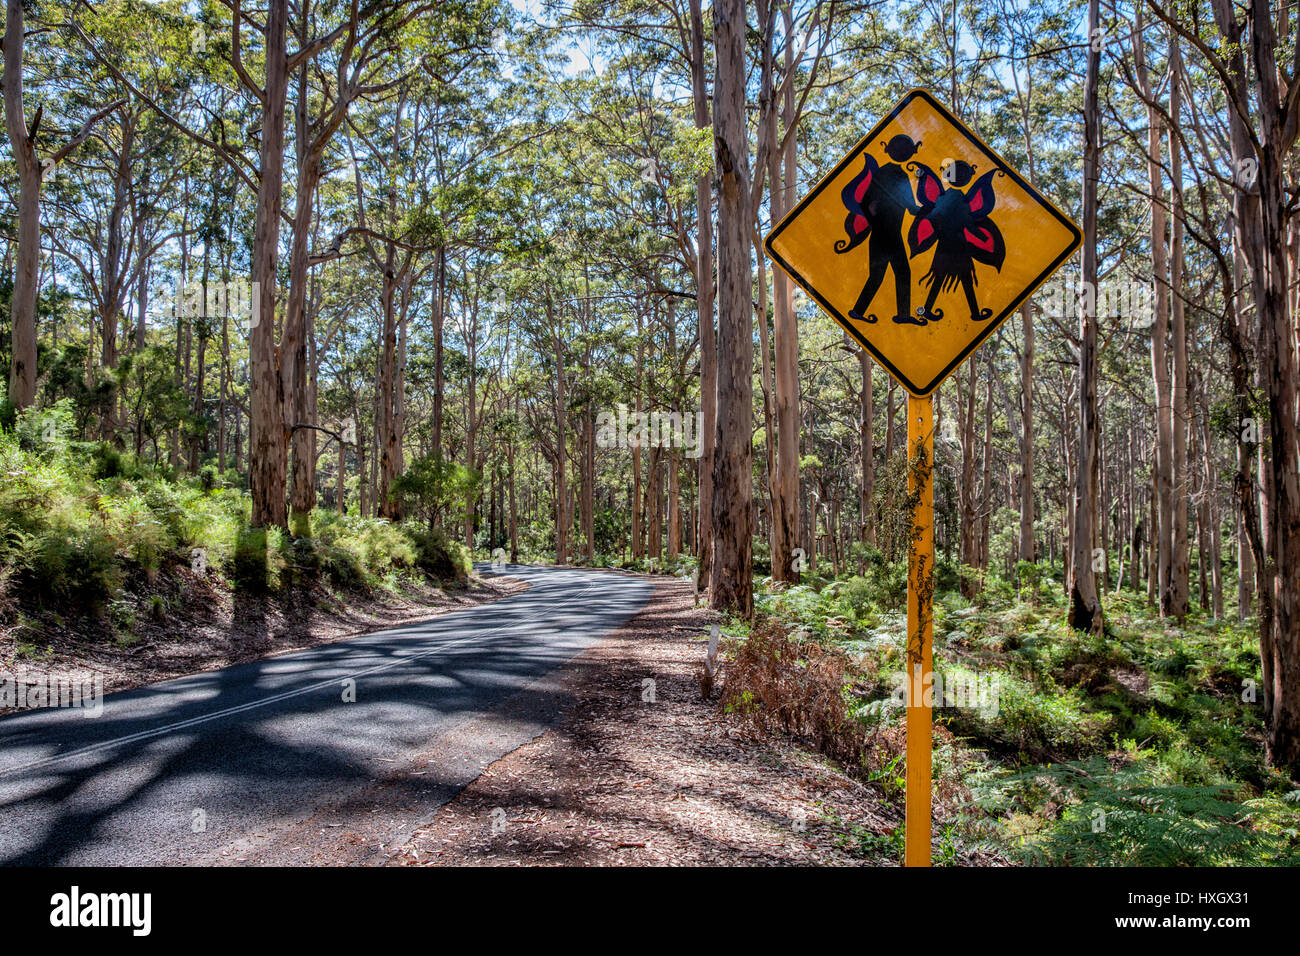 Caution Elves road sign in the tingle tree forests of South Western Australia - Stock Image